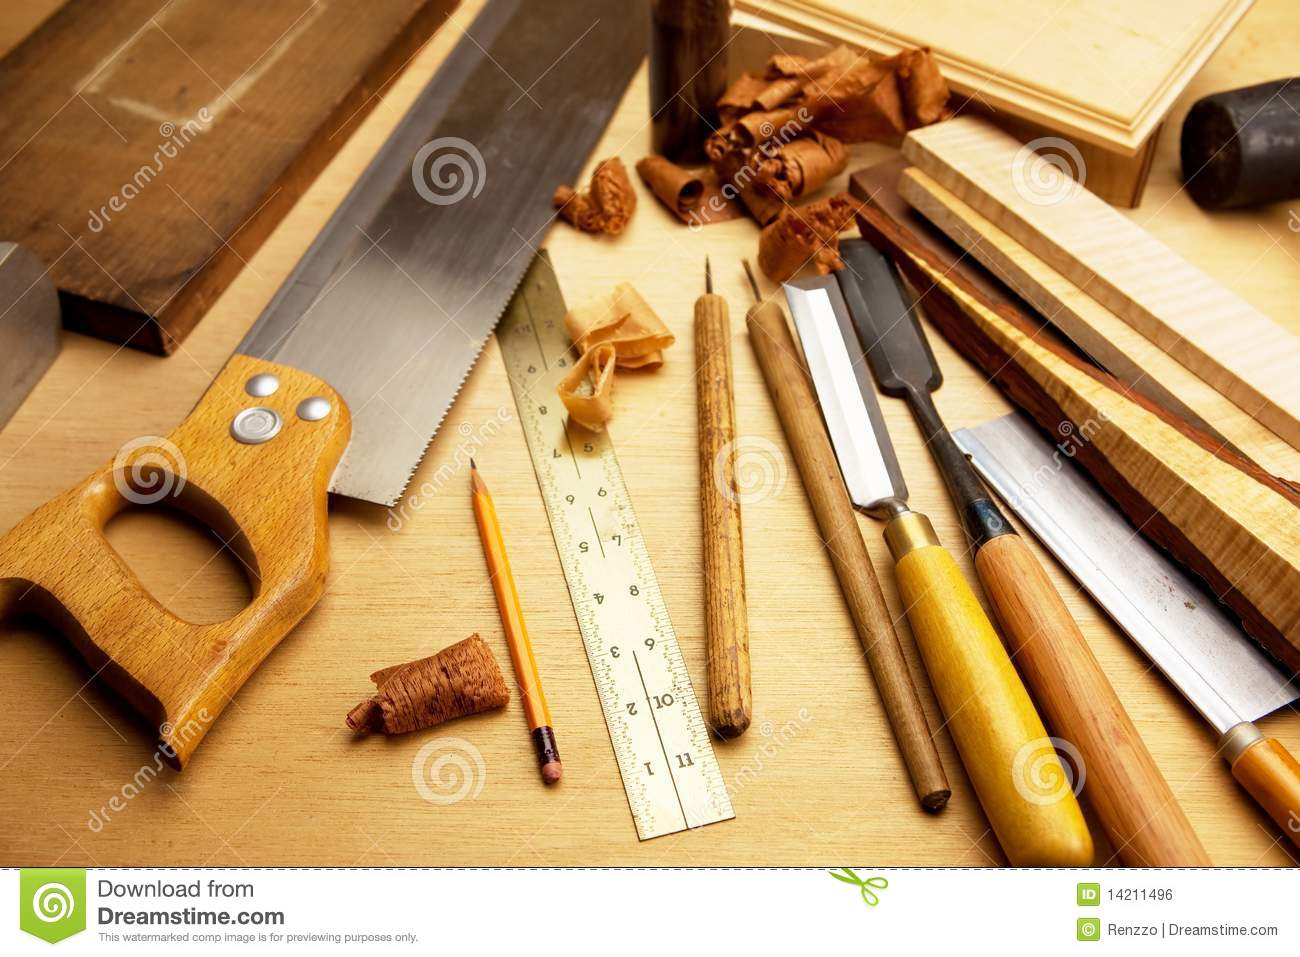 Fine Wood Working Royalty Free Stock Image - Image: 14211496